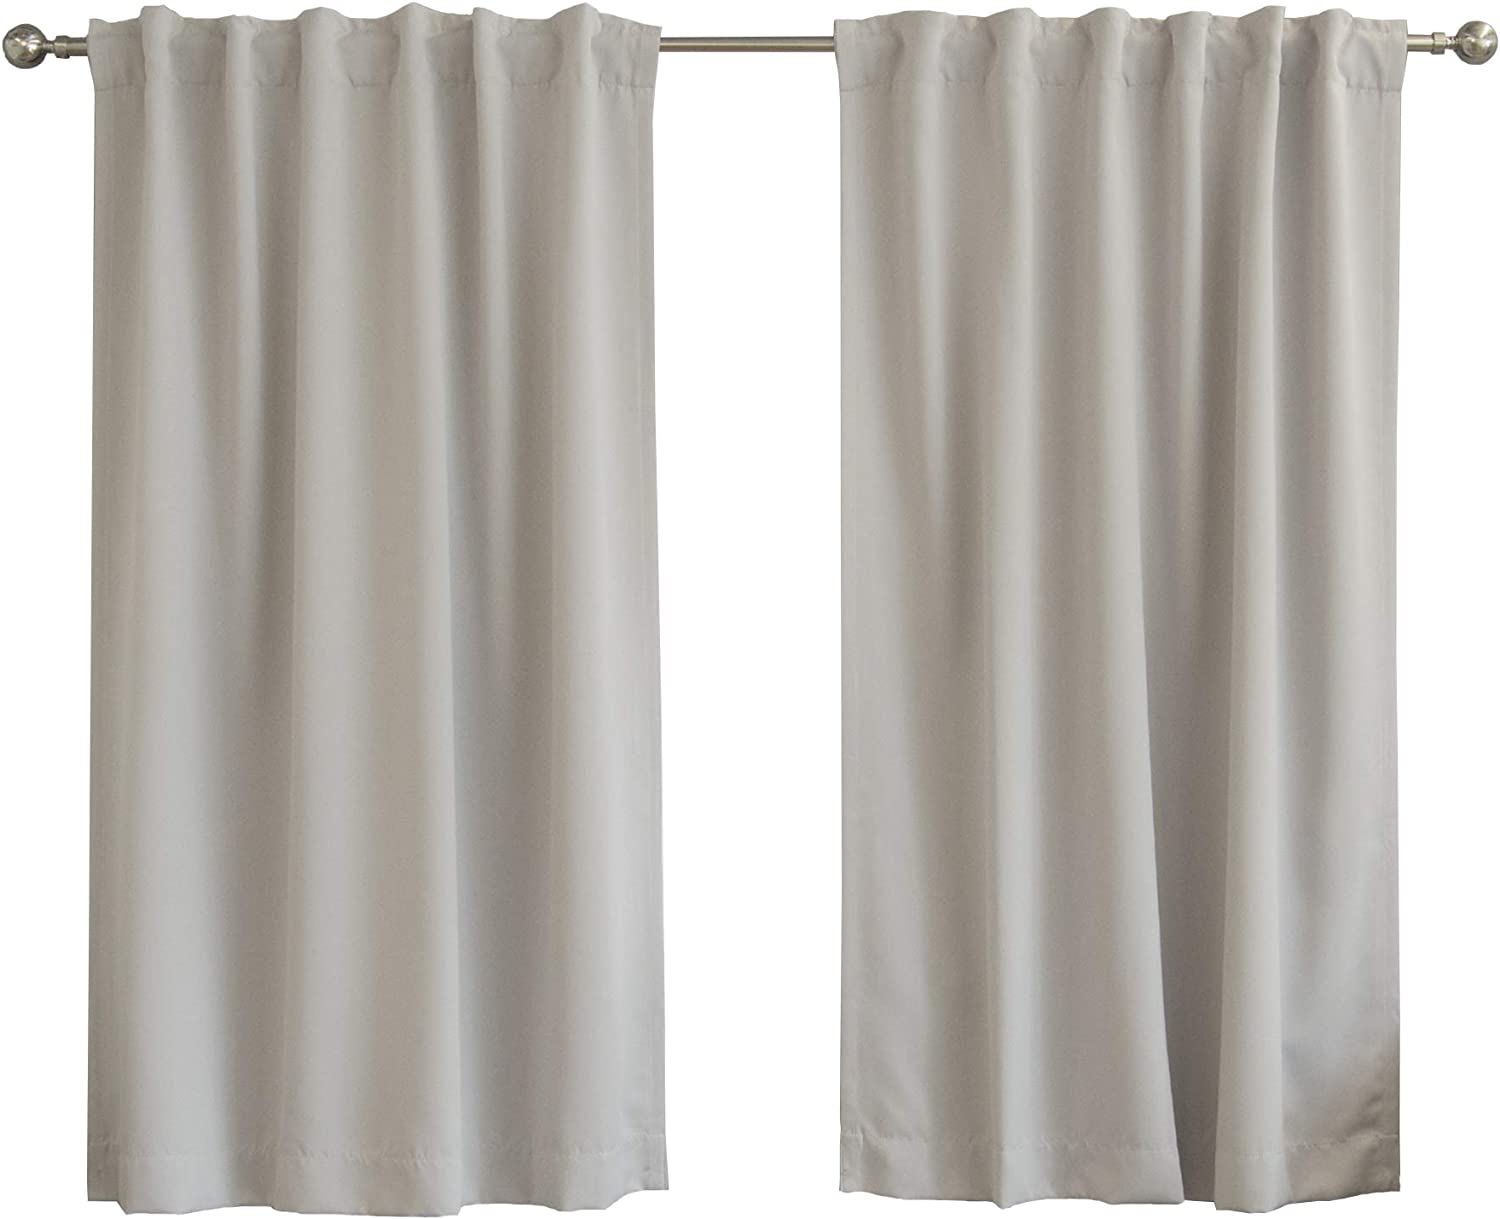 "Best Home Fashion Thermal Insulated Blackout Curtains - Back Tab/Rod Pocket - 52"" W x 63"" L - Light Grey (Set of 2 Panels)"